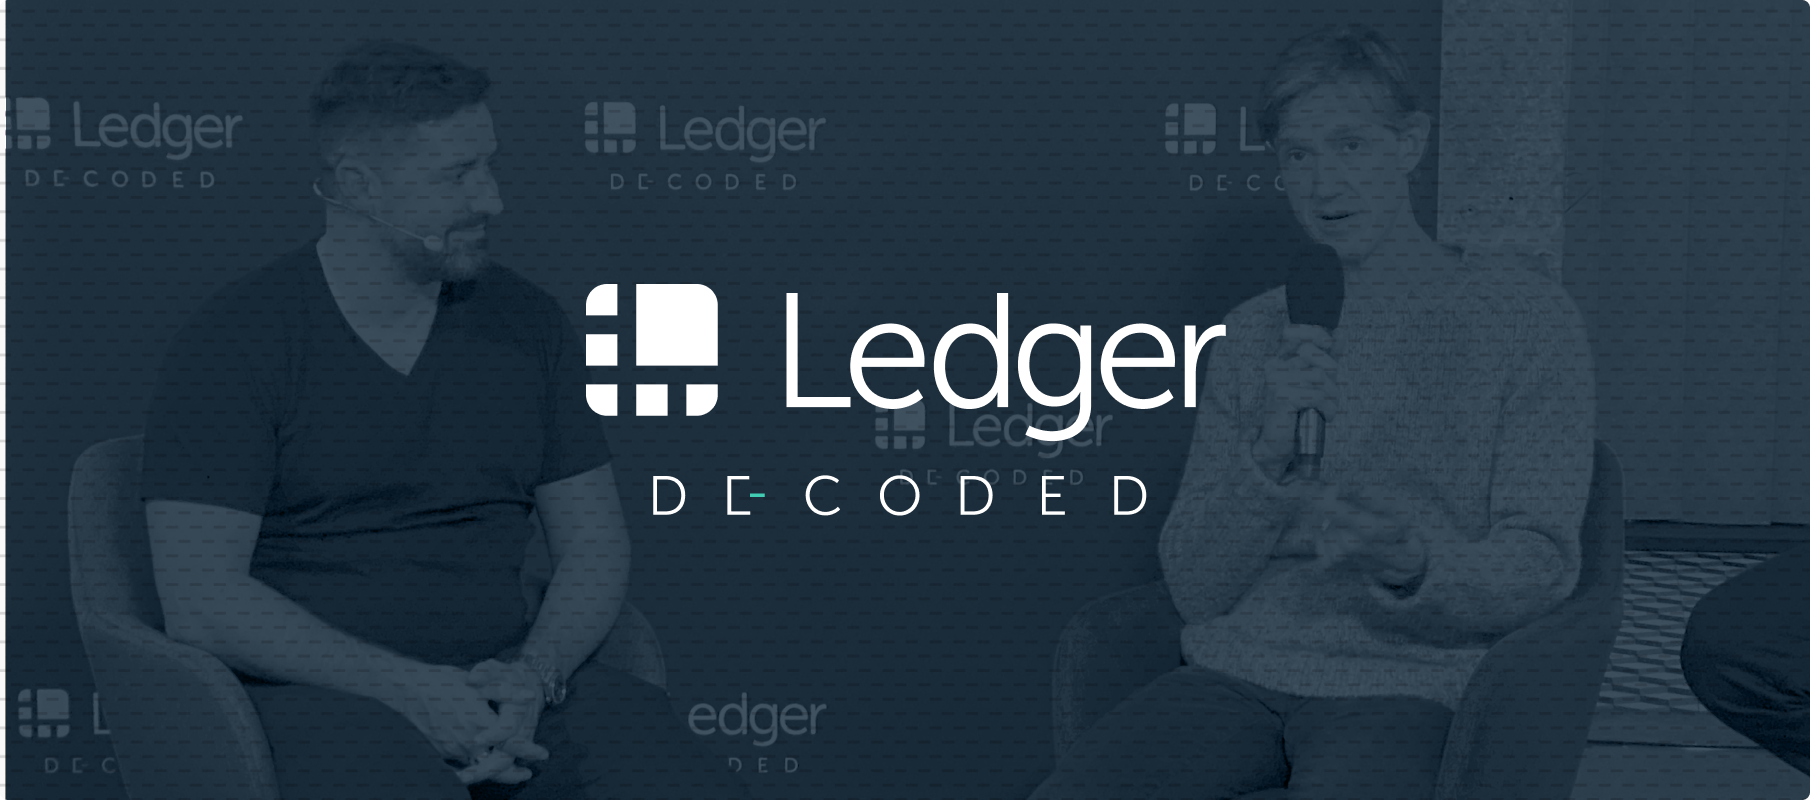 Ledger decoded, Pascal Gauthier and Ian Rogers